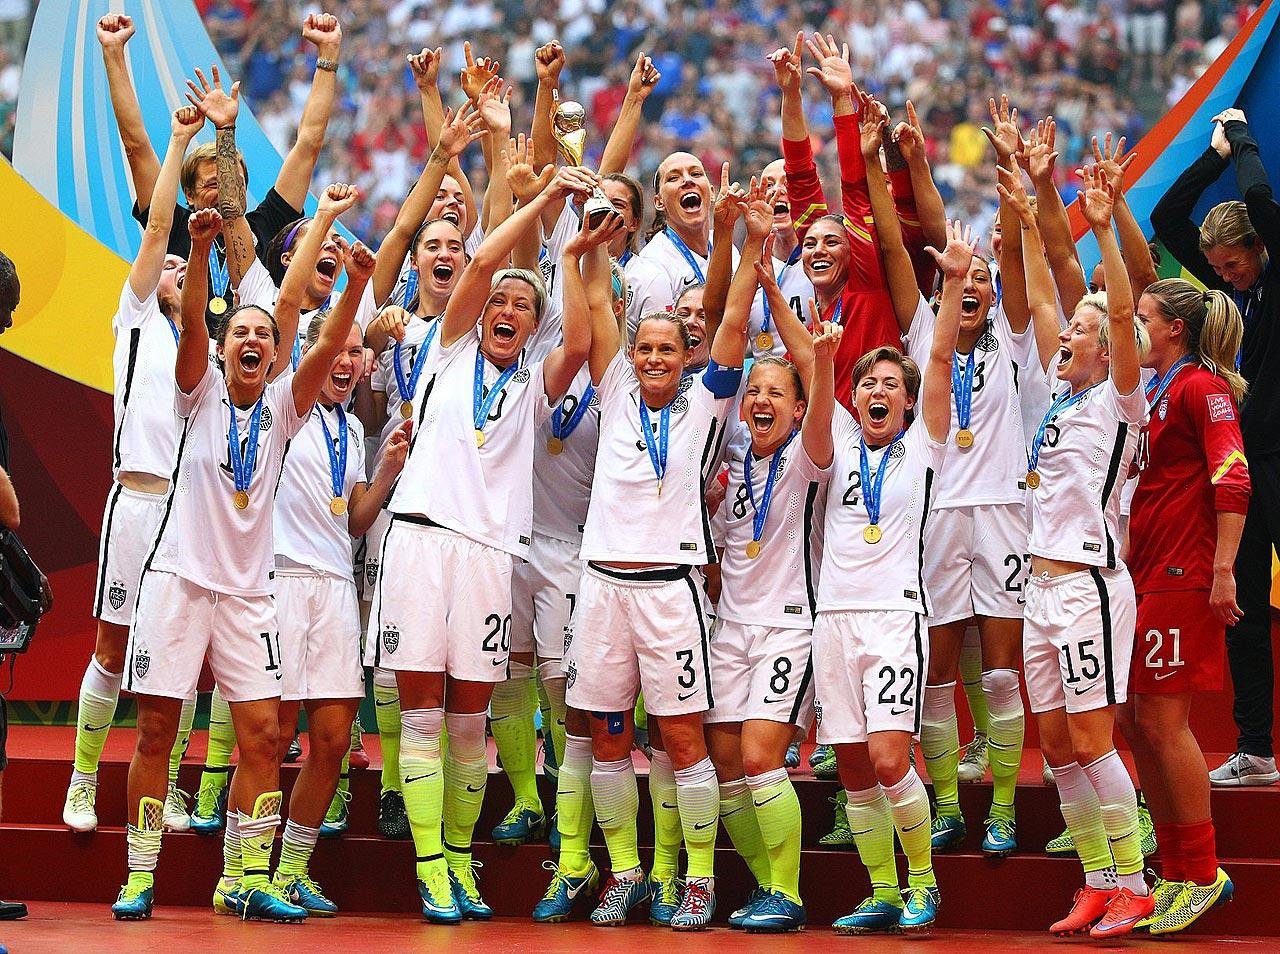 Victorious, the U.S. women's national team raises the World Cup trophy for the third time, but the first in 16 years, after completing a 5-2 win over Japan in the final at Vancouver's BC Place.